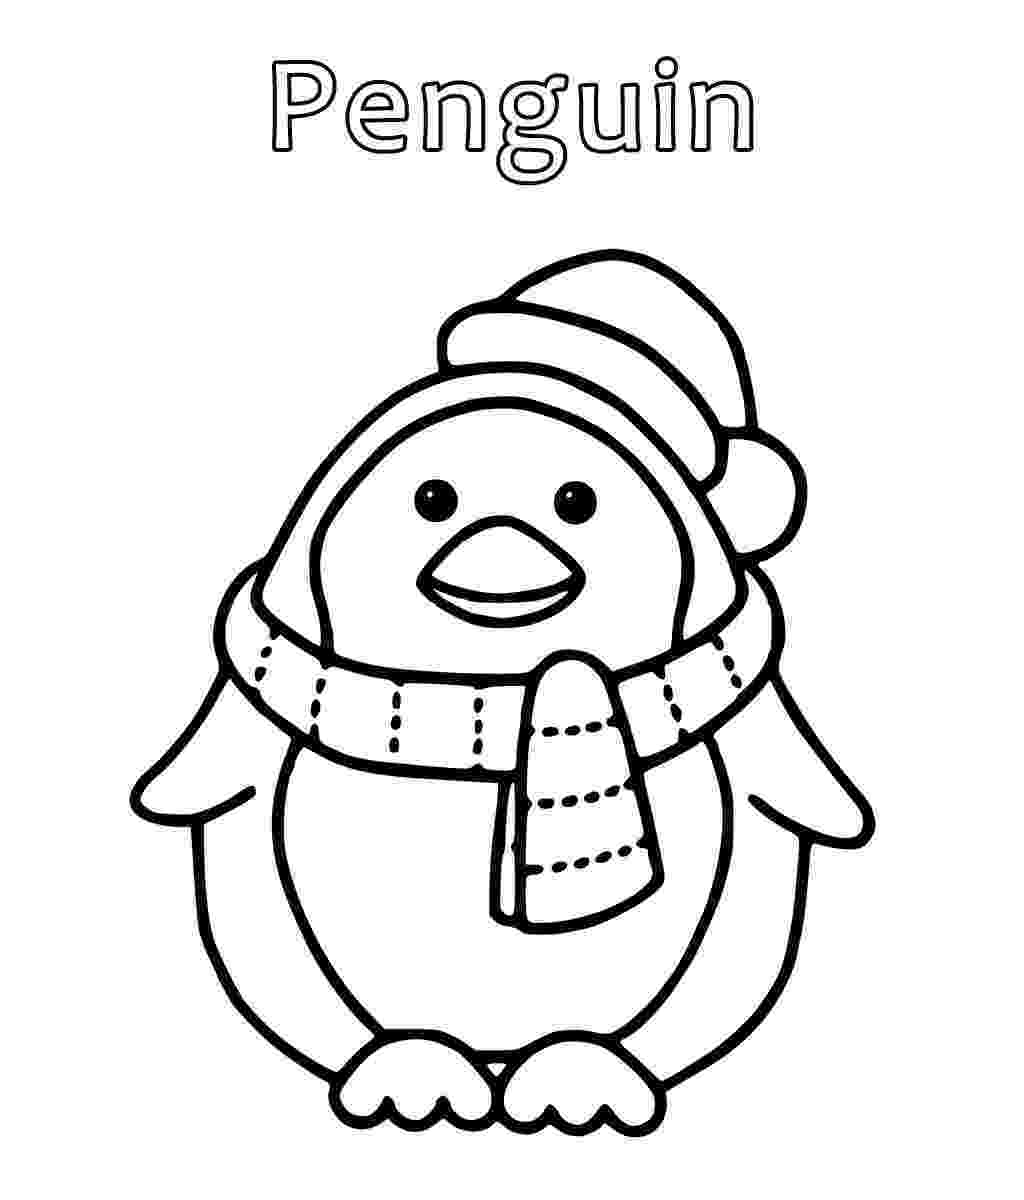 cute penguin pictures to color colt 45 drawing at getdrawingscom free for personal use penguin cute color to pictures